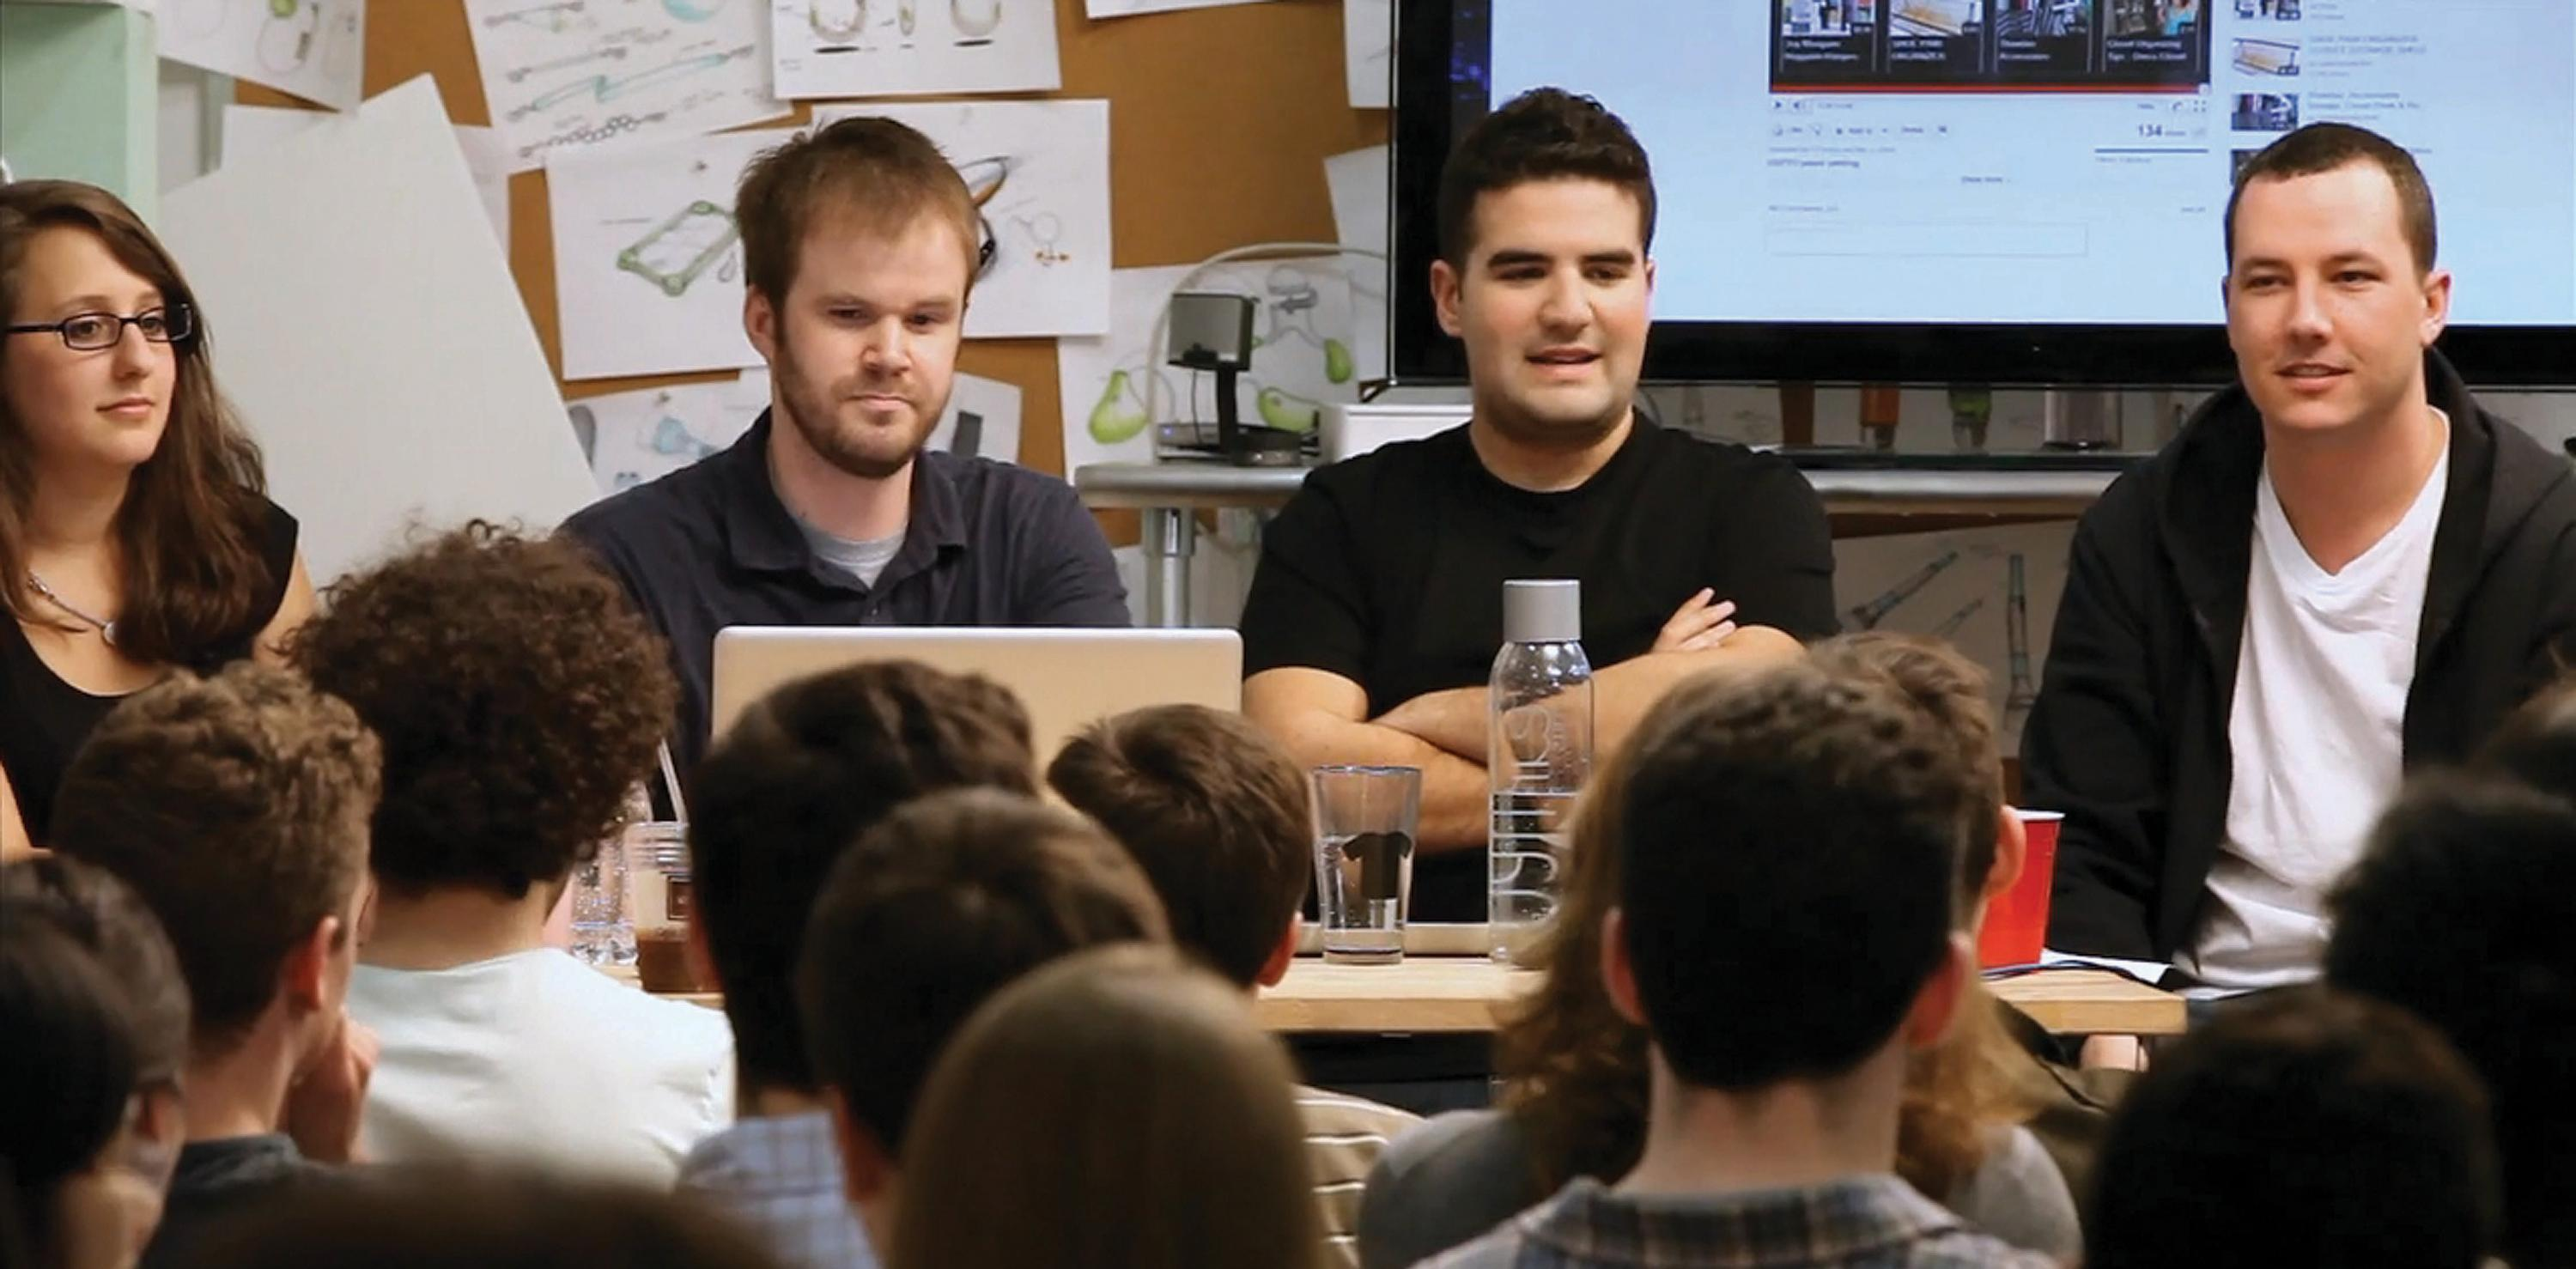 Quirky Wants to Topple CPGs by Turning Ordinary People into Millionaire Inventors